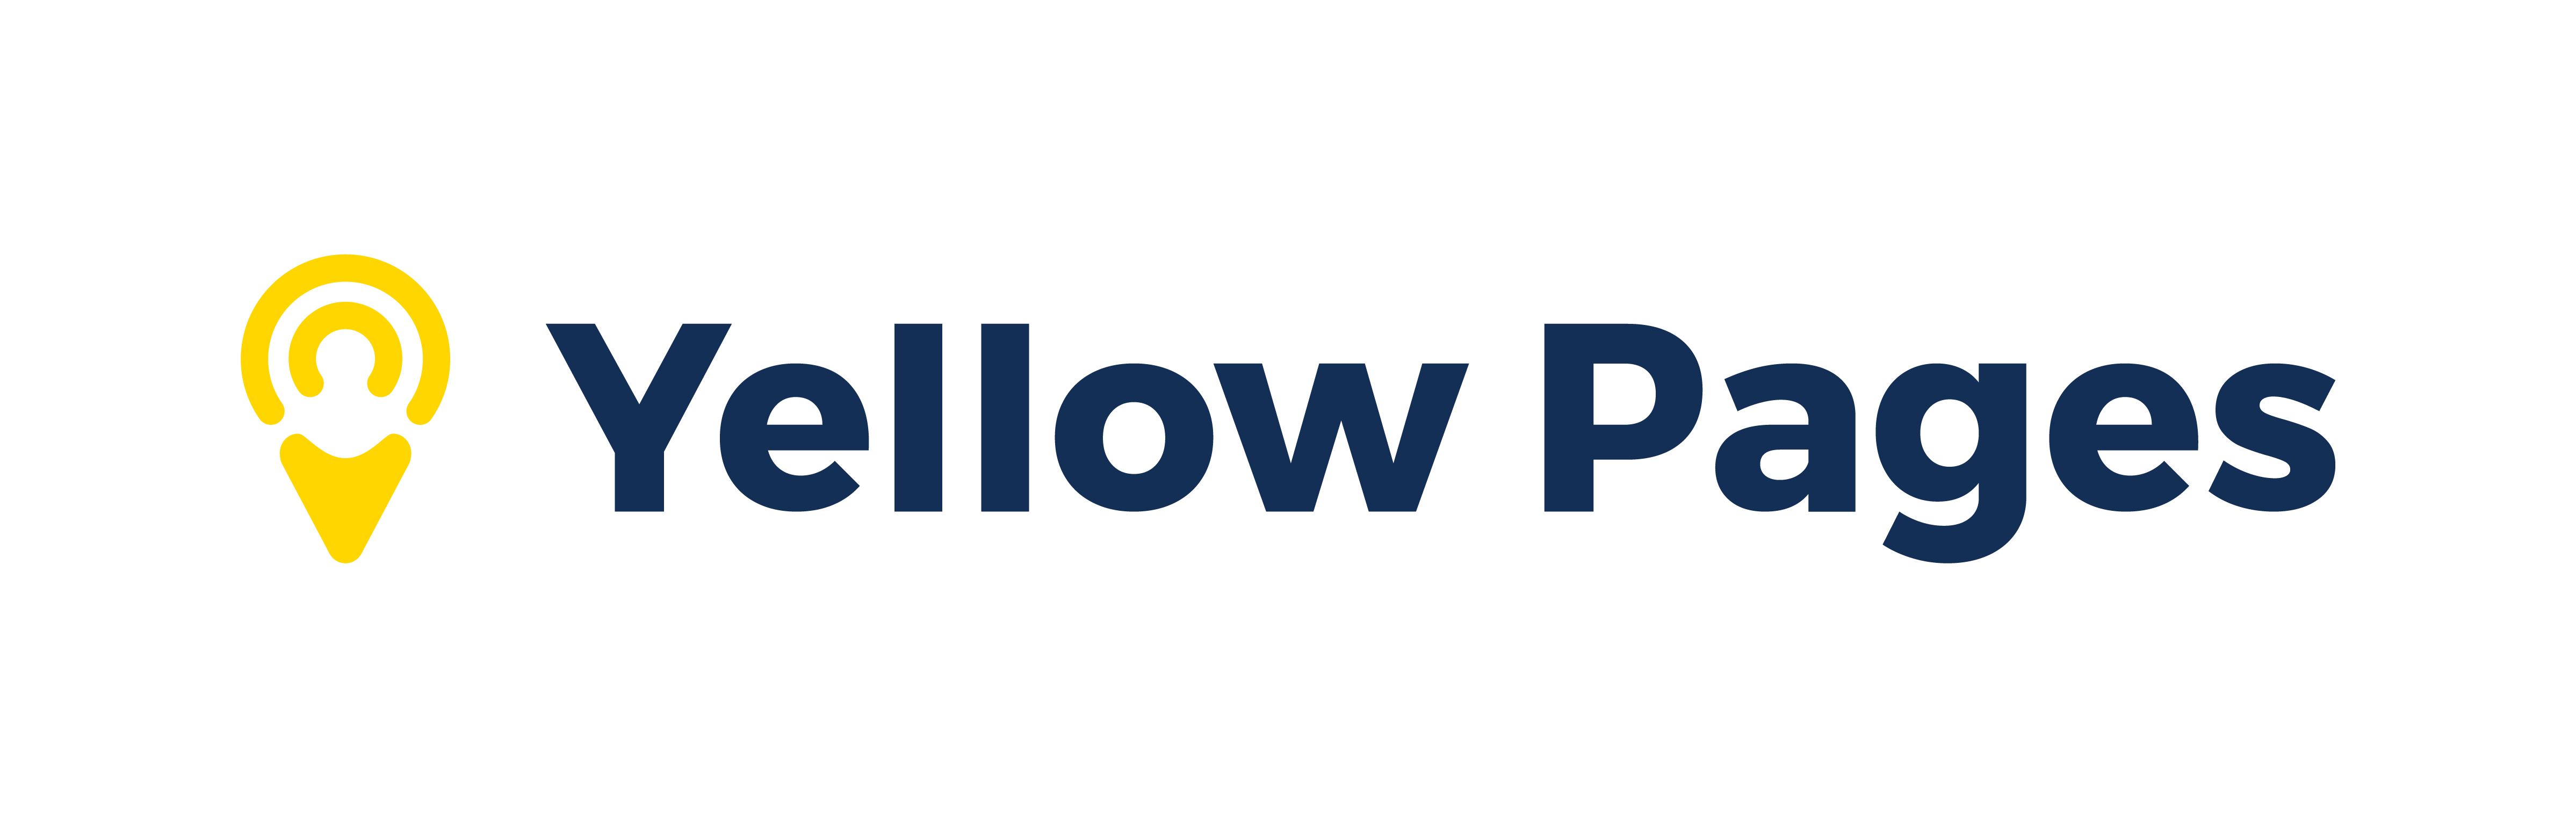 Yellow Pages Network